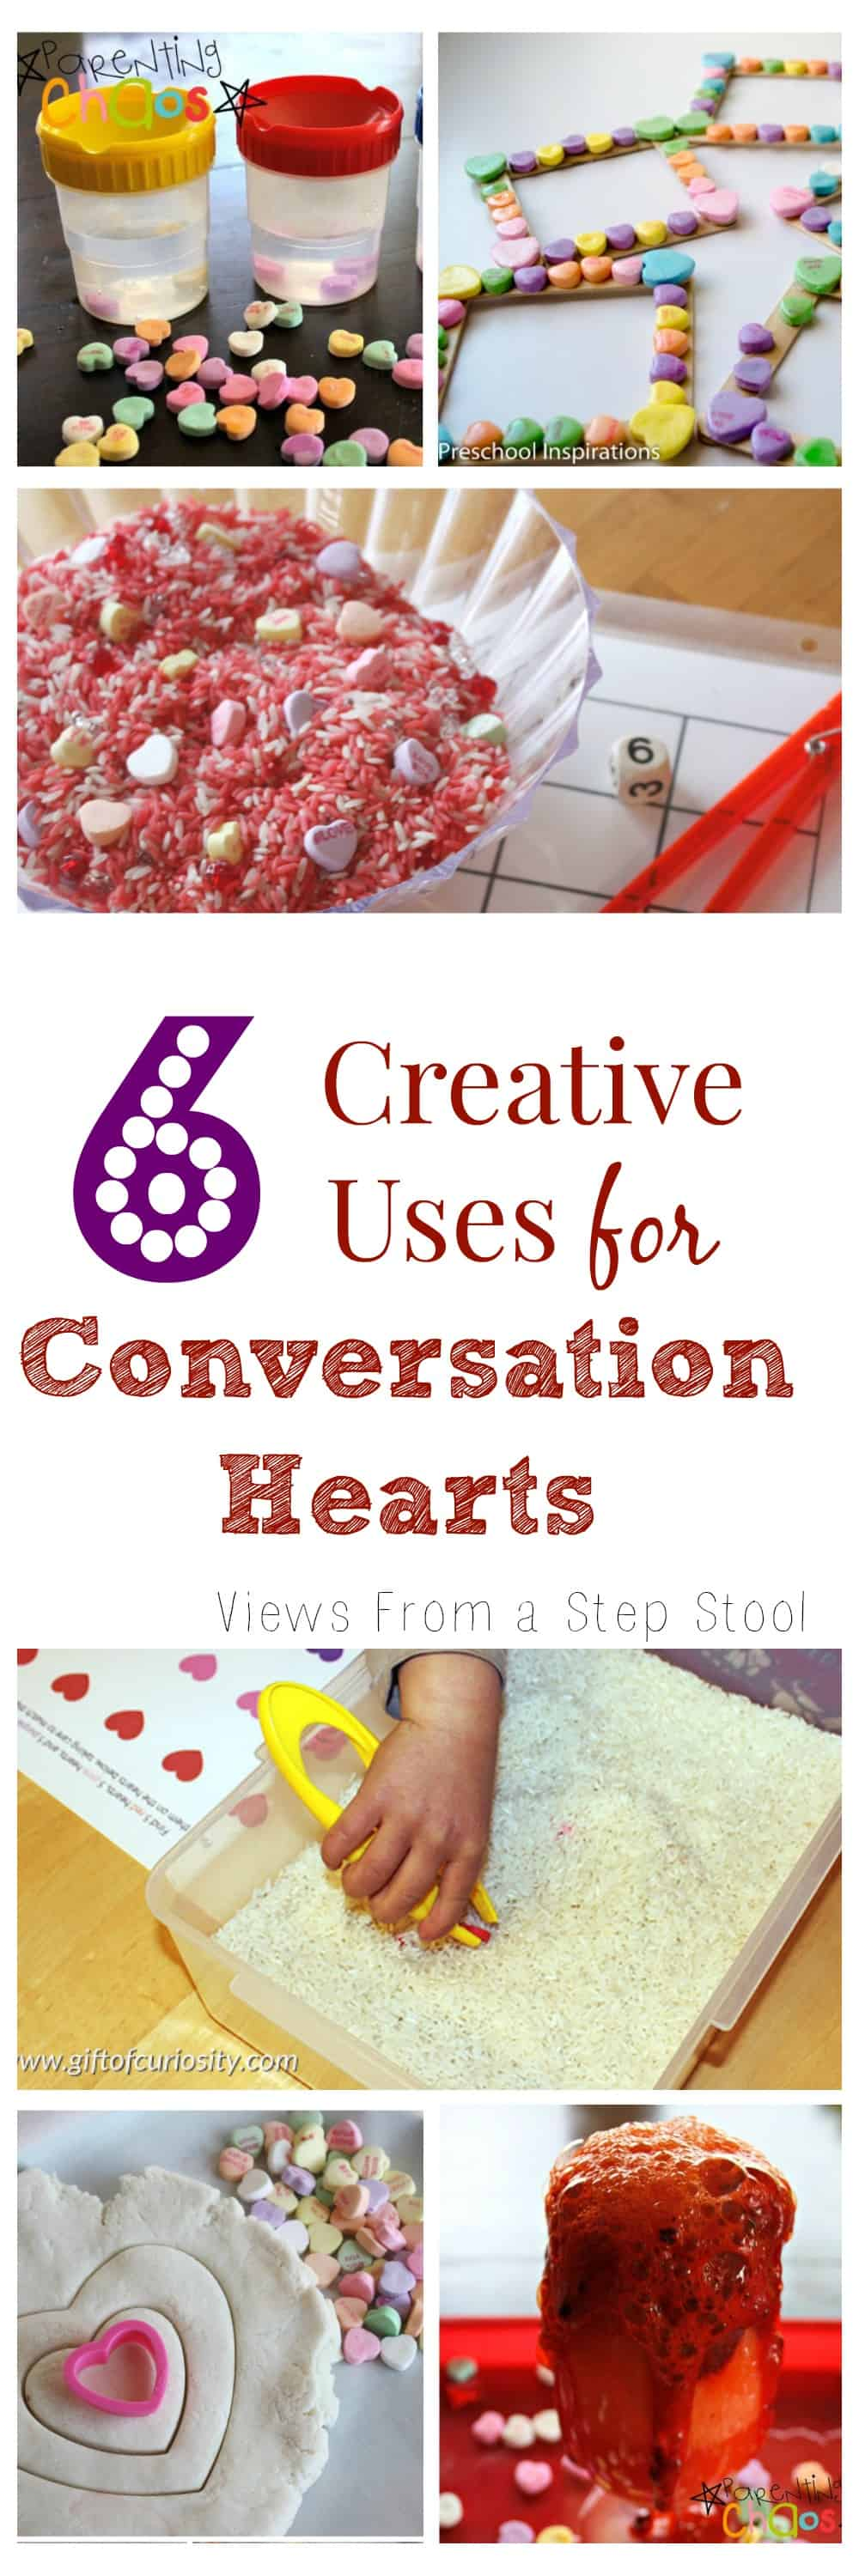 These activities using conversation hearts are perfect for a party, or for keeping the kids busy and learning at home!